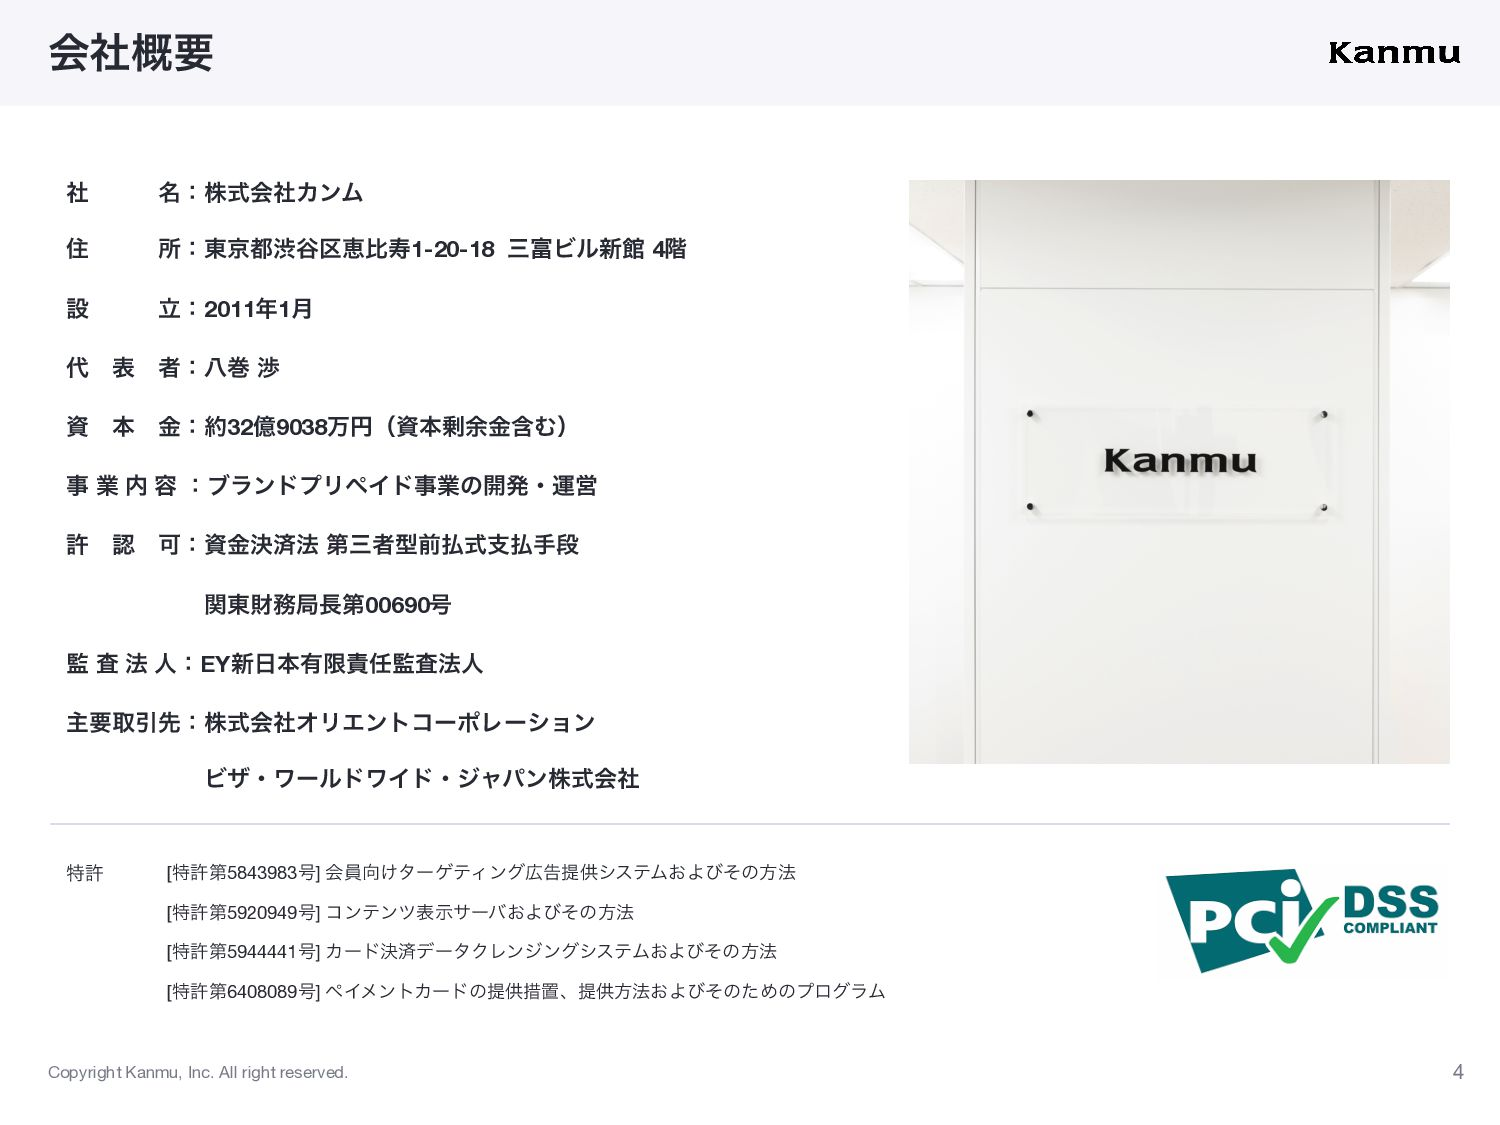 Copyright Kanmu, Inc. All right reserved. 会社概要 ...